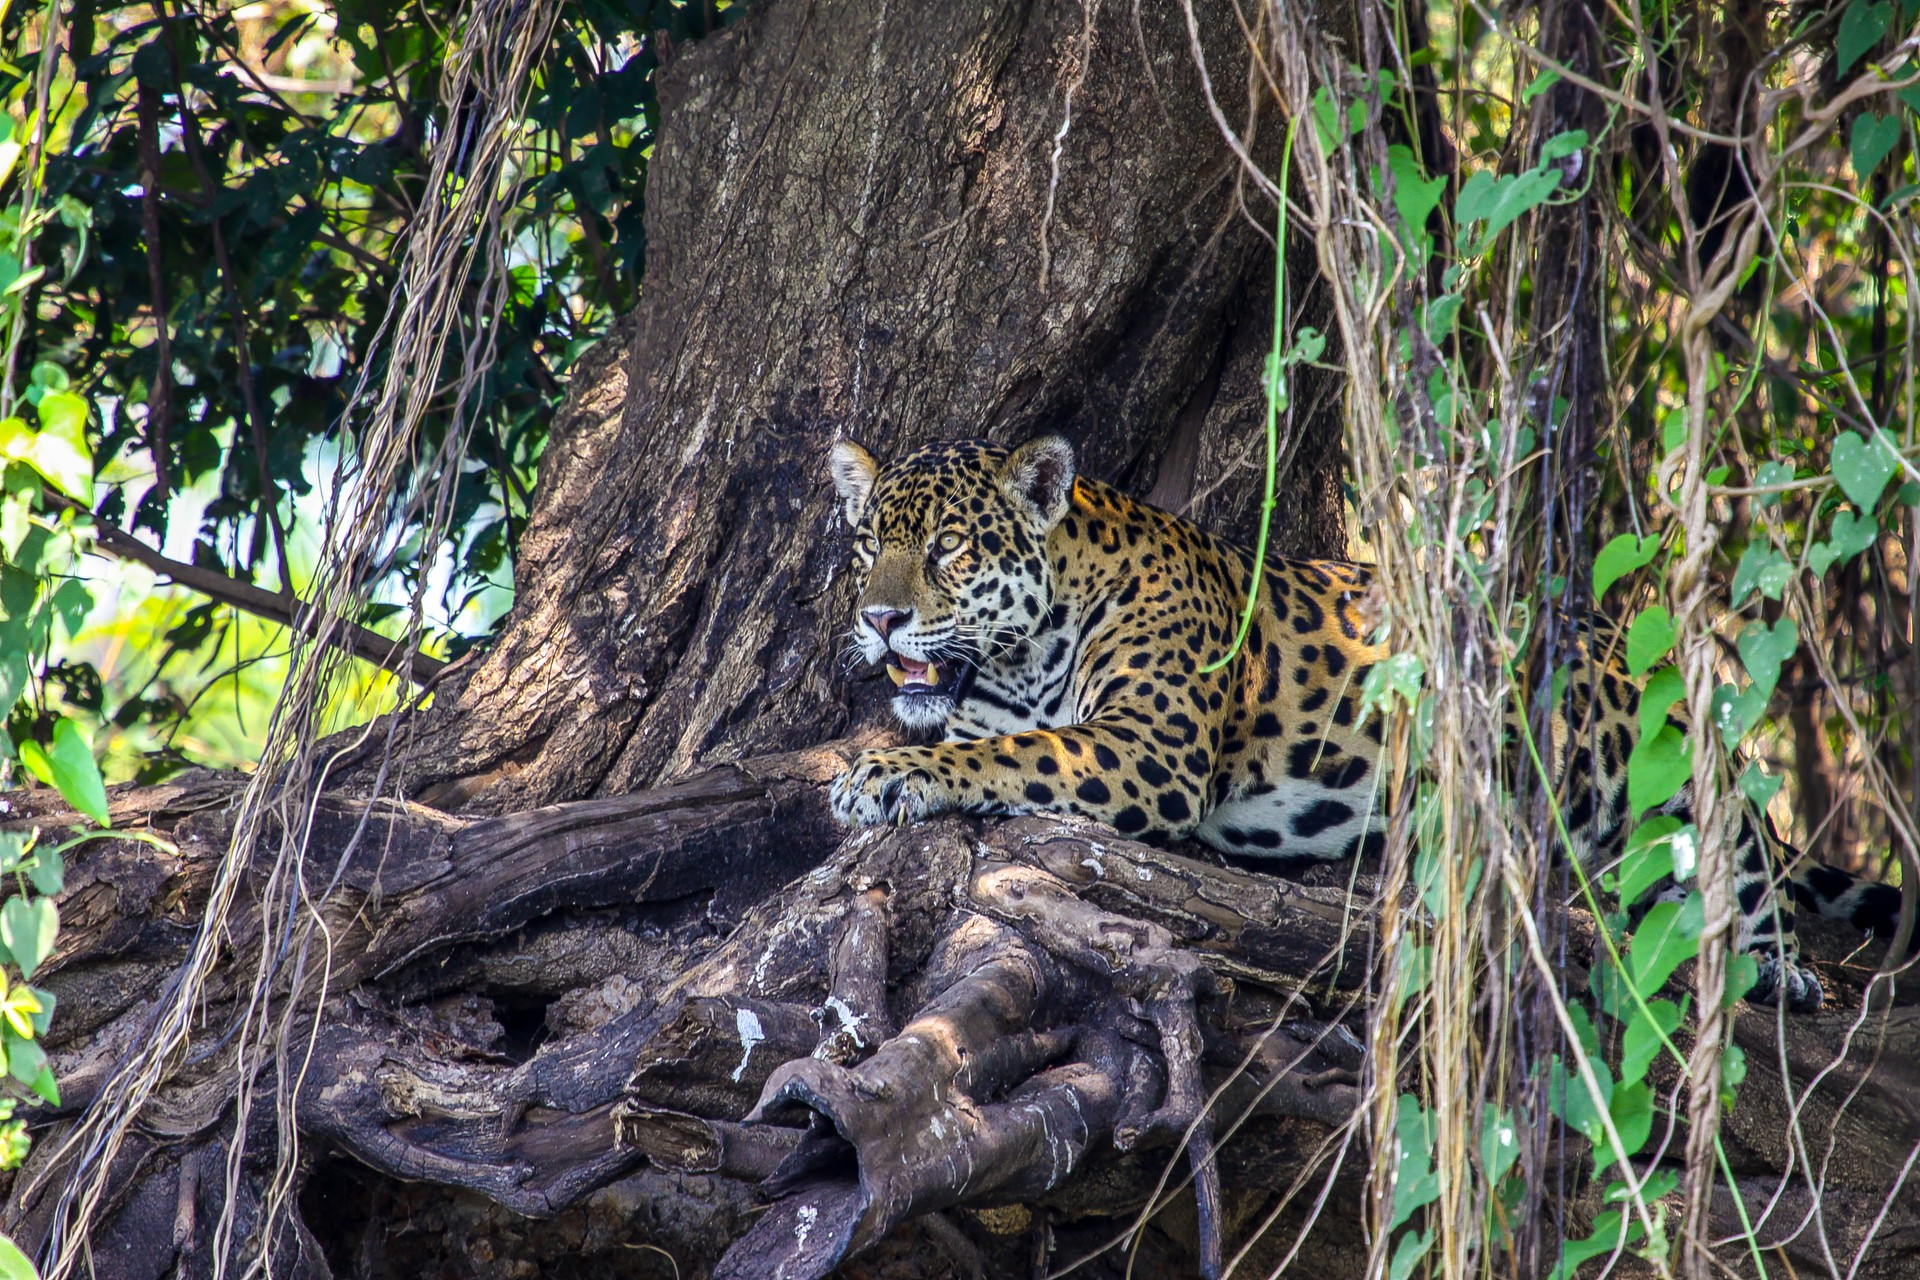 Jaguar relaxing on banks in the Pantanal, Brazil